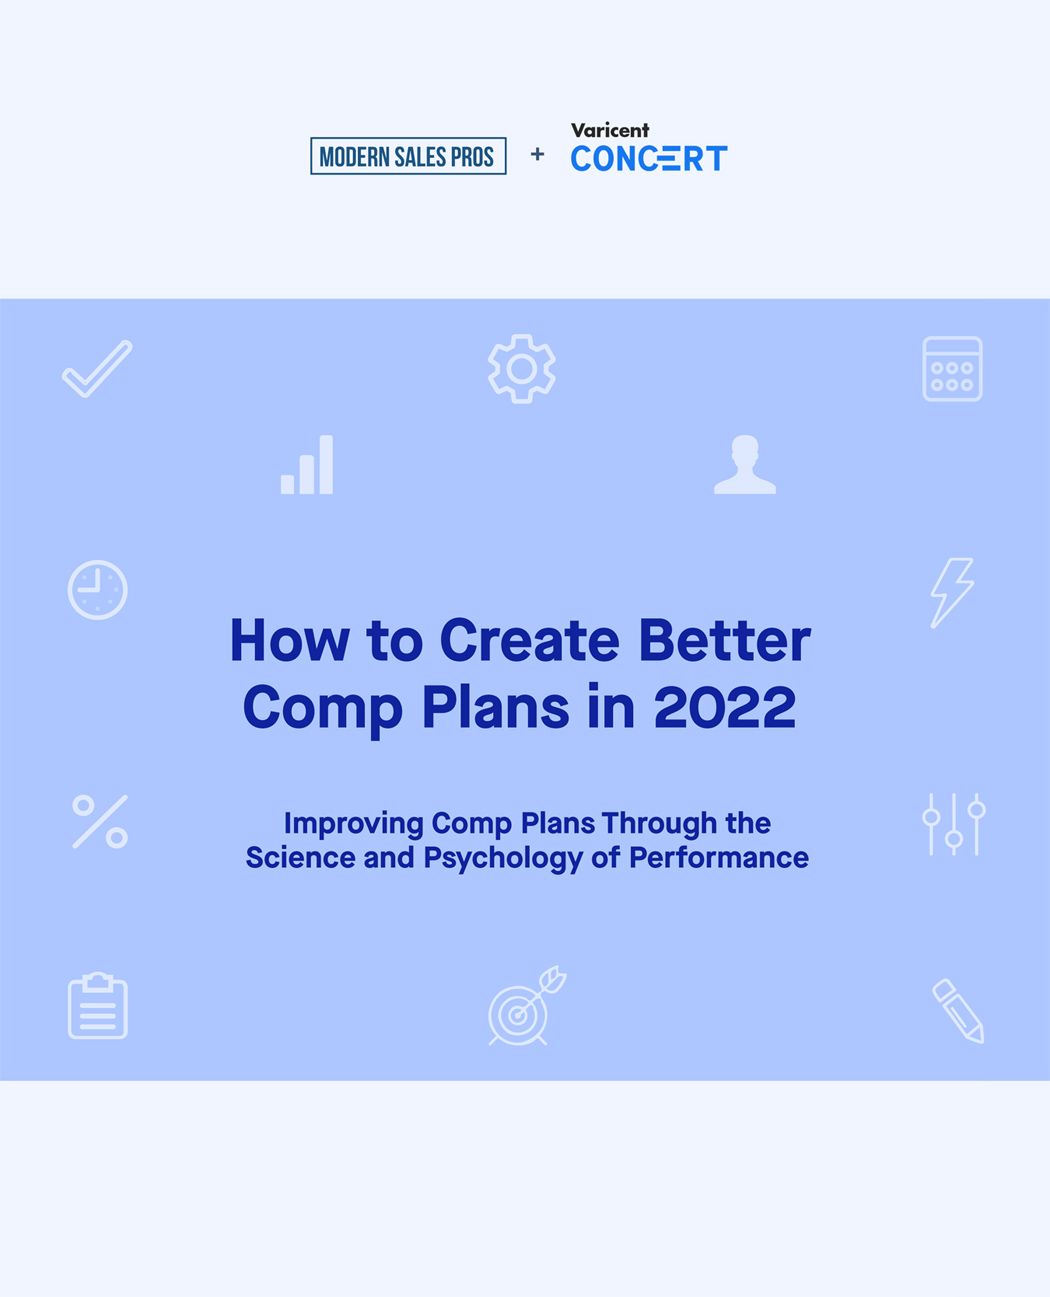 How to Create Better Comp Plans in 2022